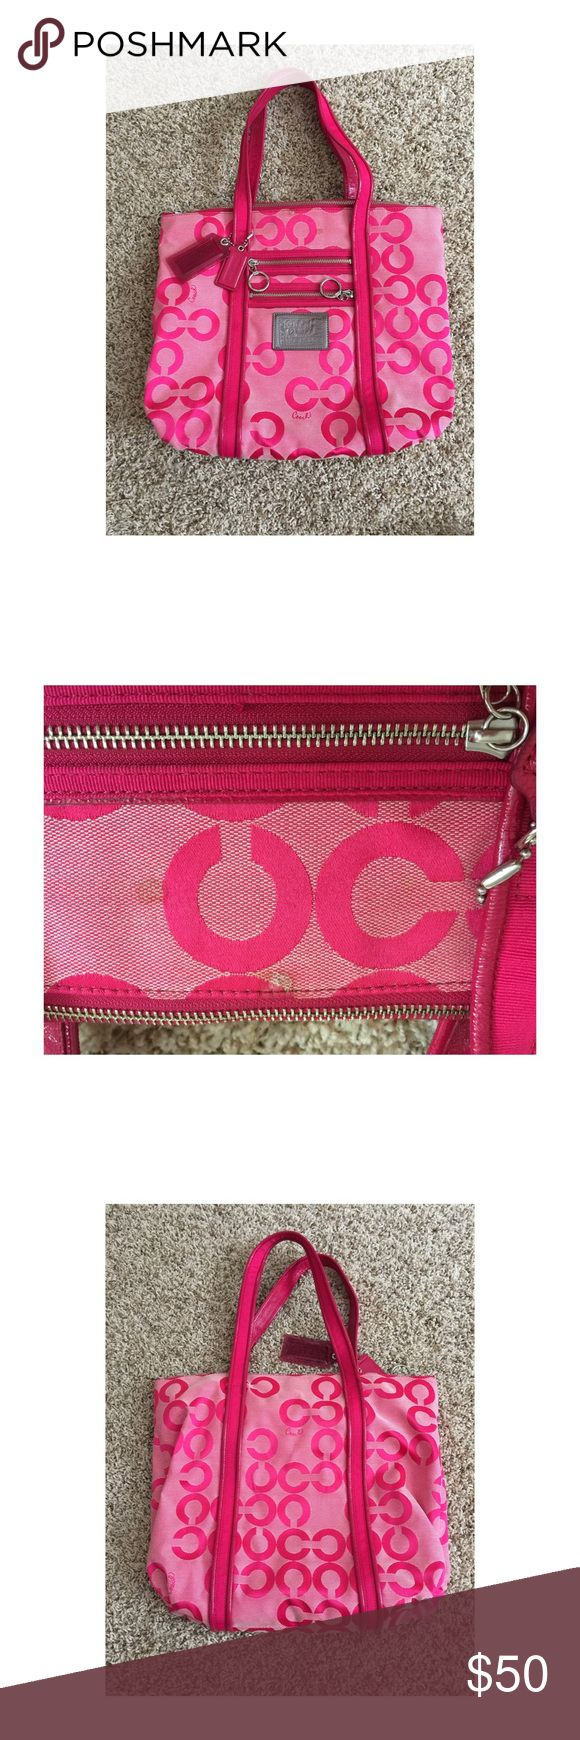 "Coach Poppy Pop Art Glam tote Authentic (serial number can be verified by calling Coach customer service)  Large pink tote in good used condition. There are a few spots on the outside of the bag that a dry cleaner or purse specialist would most likely be able to remove (shown in the two close up pics). Inside lining is clean with multiple inside pockets for keys, phone, etc.  price reflects the age and condition.   Measurements are: 16 3/4""L x 12 1/4""H x 4""W 20"" handles with a 8 1/2"" drop…"